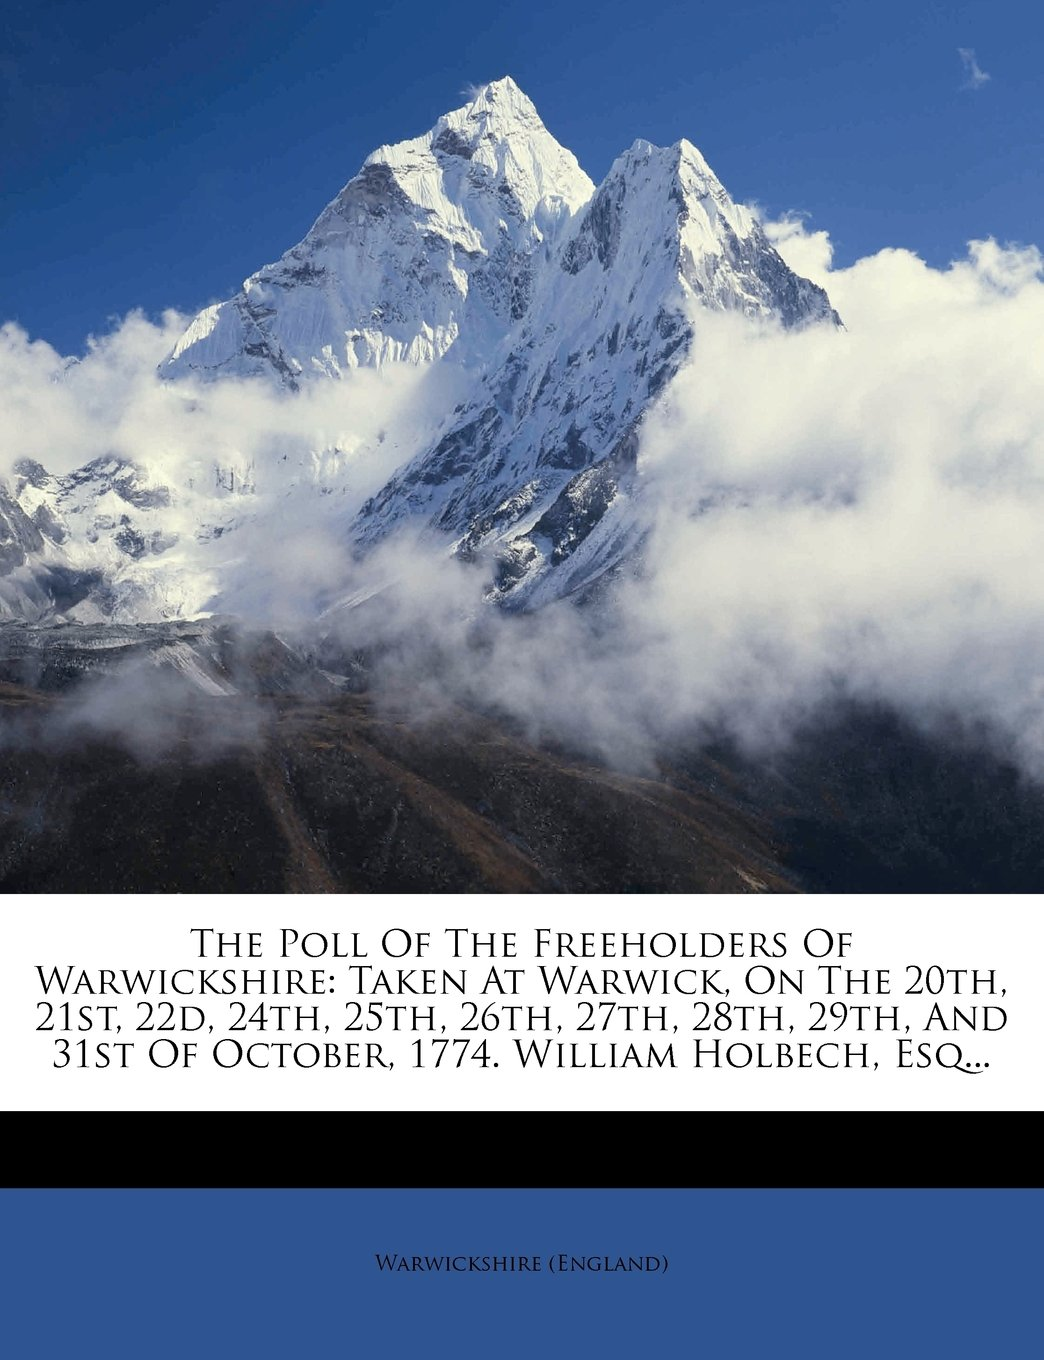 Download The Poll Of The Freeholders Of Warwickshire: Taken At Warwick, On The 20th, 21st, 22d, 24th, 25th, 26th, 27th, 28th, 29th, And 31st Of October, 1774. William Holbech, Esq... pdf